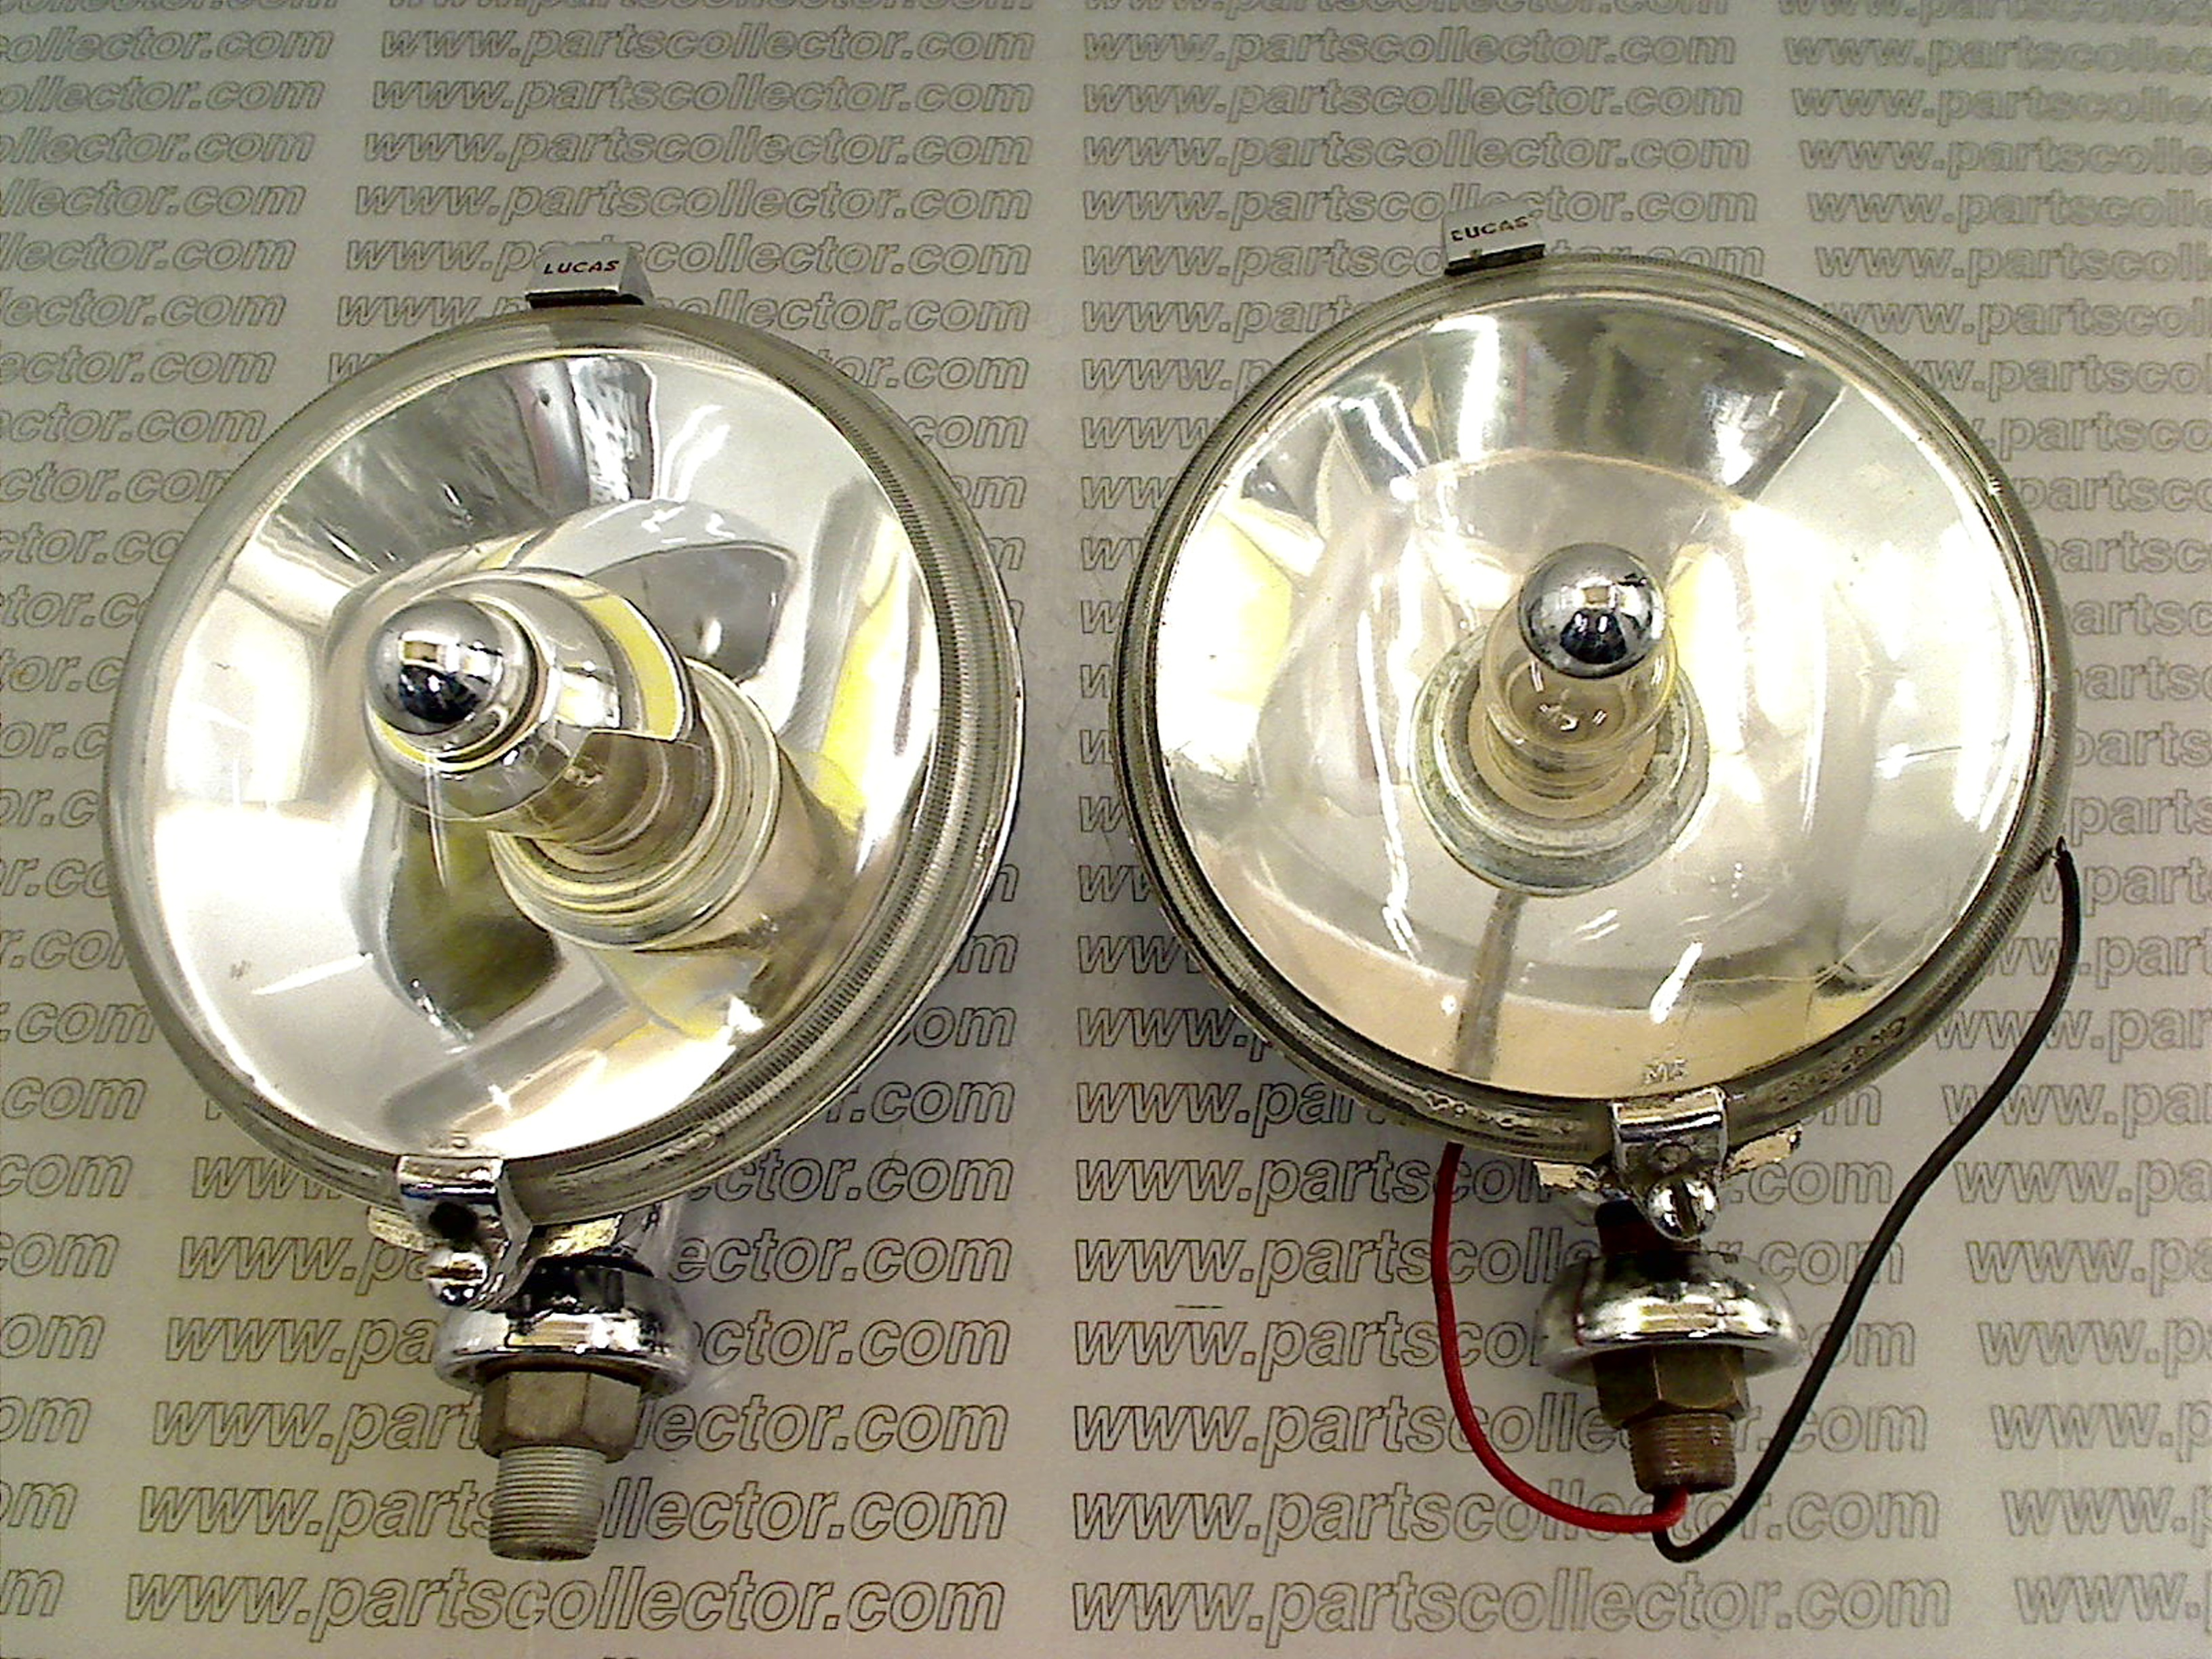 PAIR OF DEEP BEAM LIGHTS